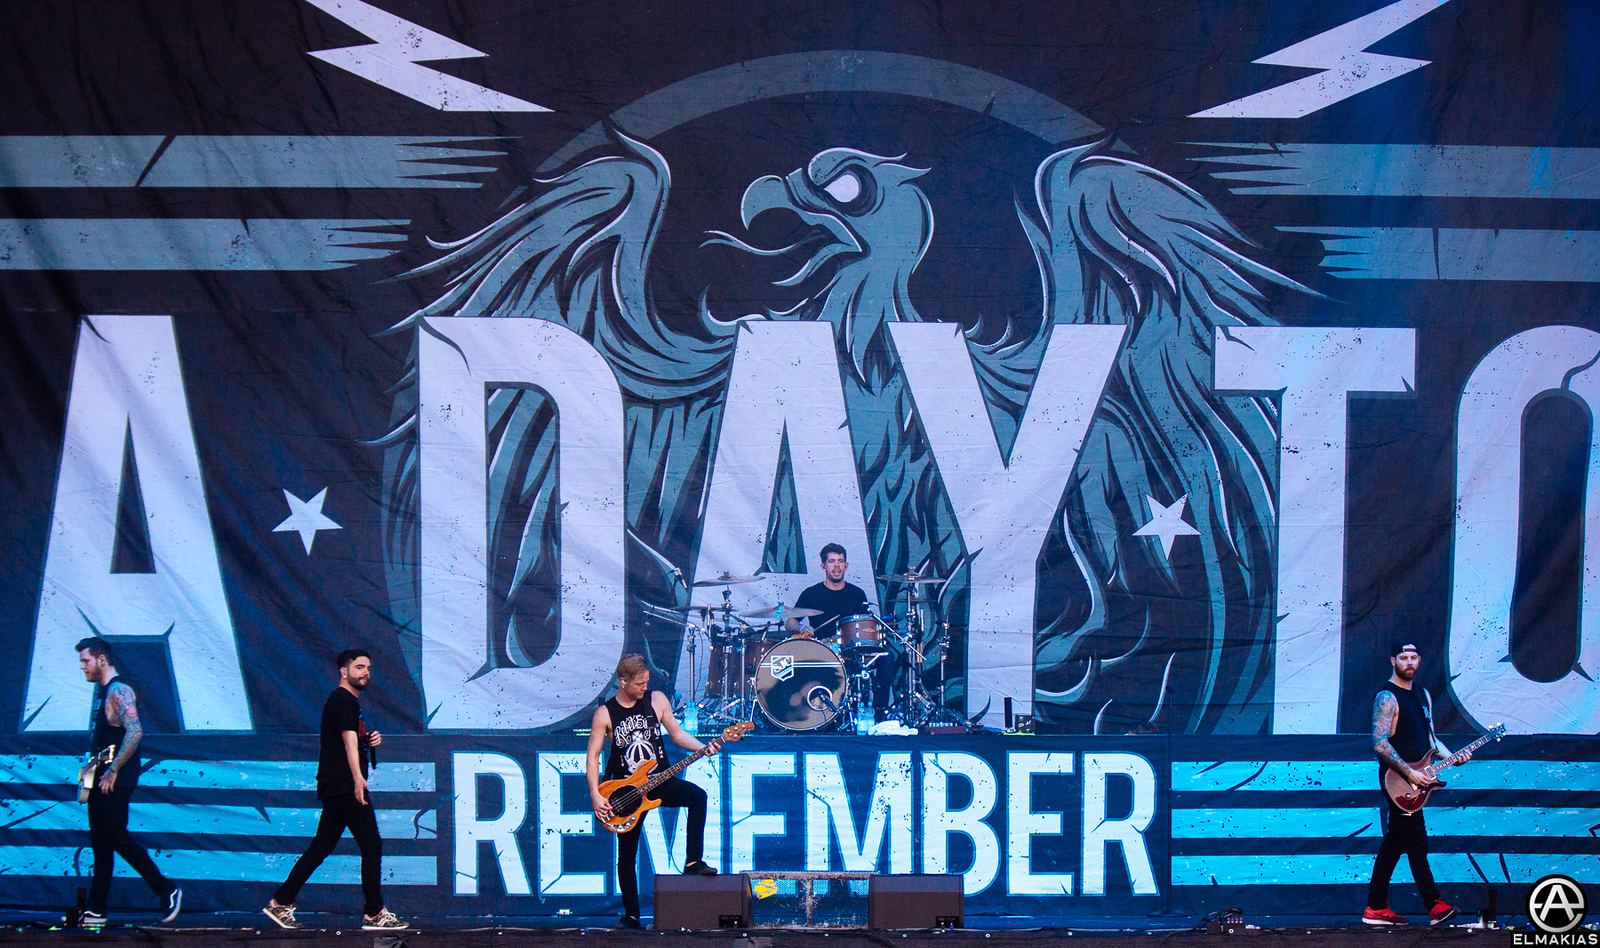 A Day To Remember live at Greenfield Festival in Interlaken, Switzerland - European Festivals